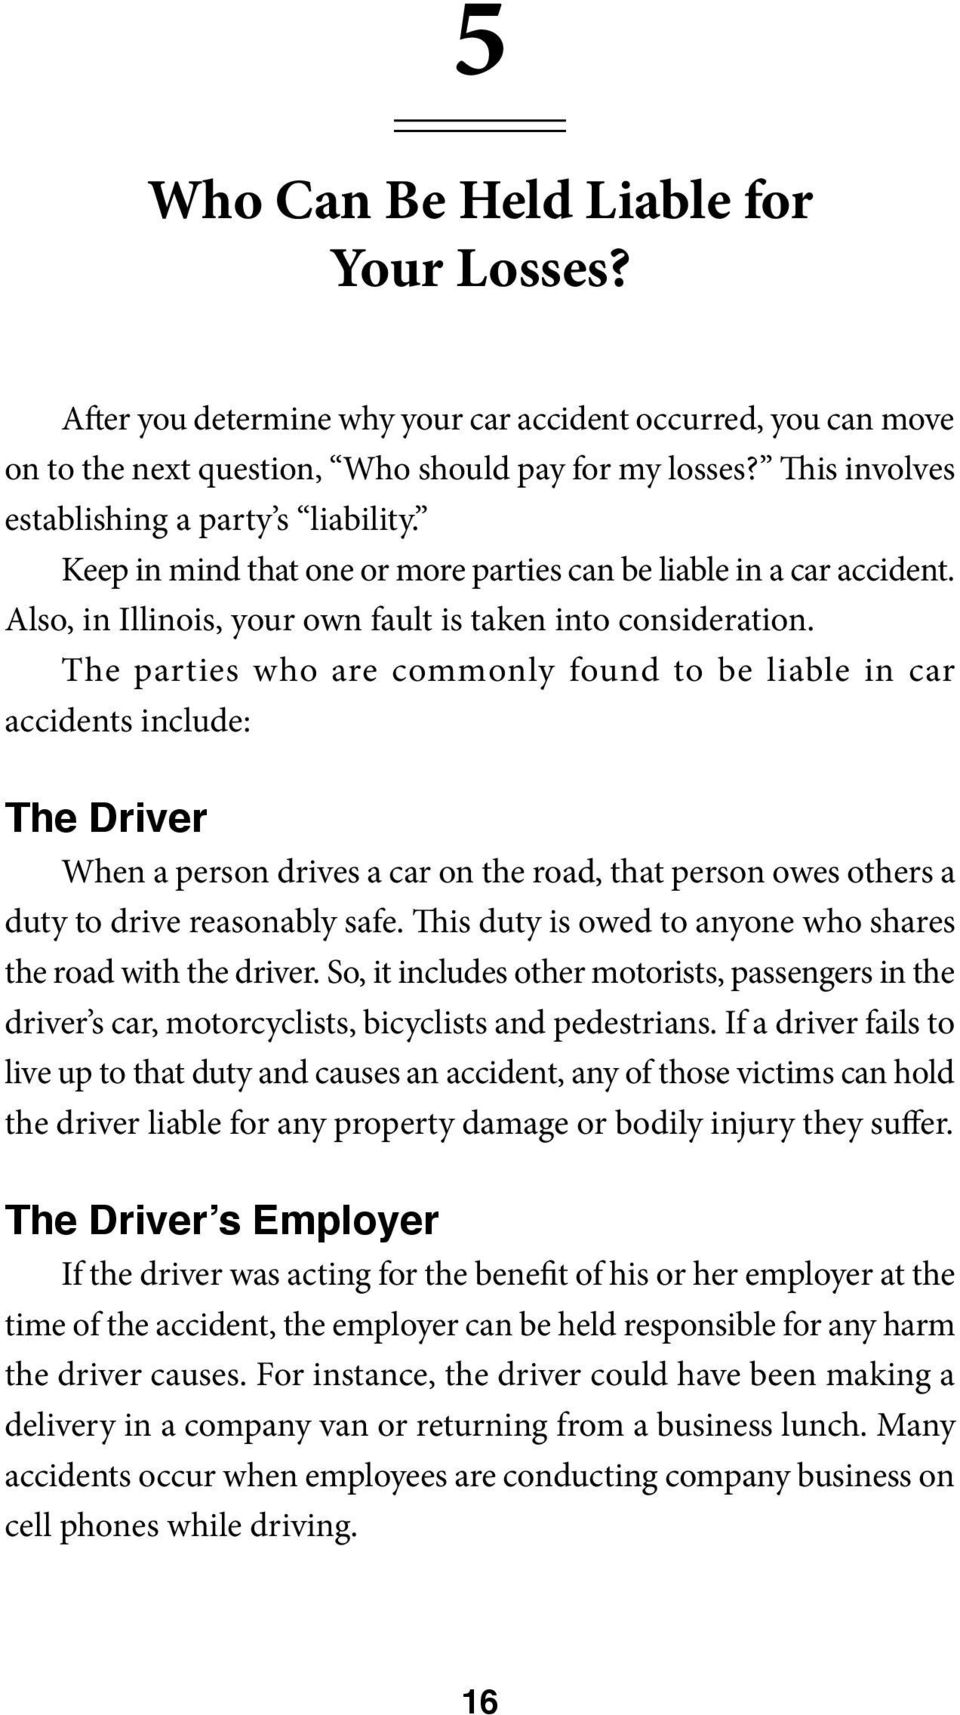 The parties who are commonly found to be liable in car accidents include: The Driver When a person drives a car on the road, that person owes others a duty to drive reasonably safe.